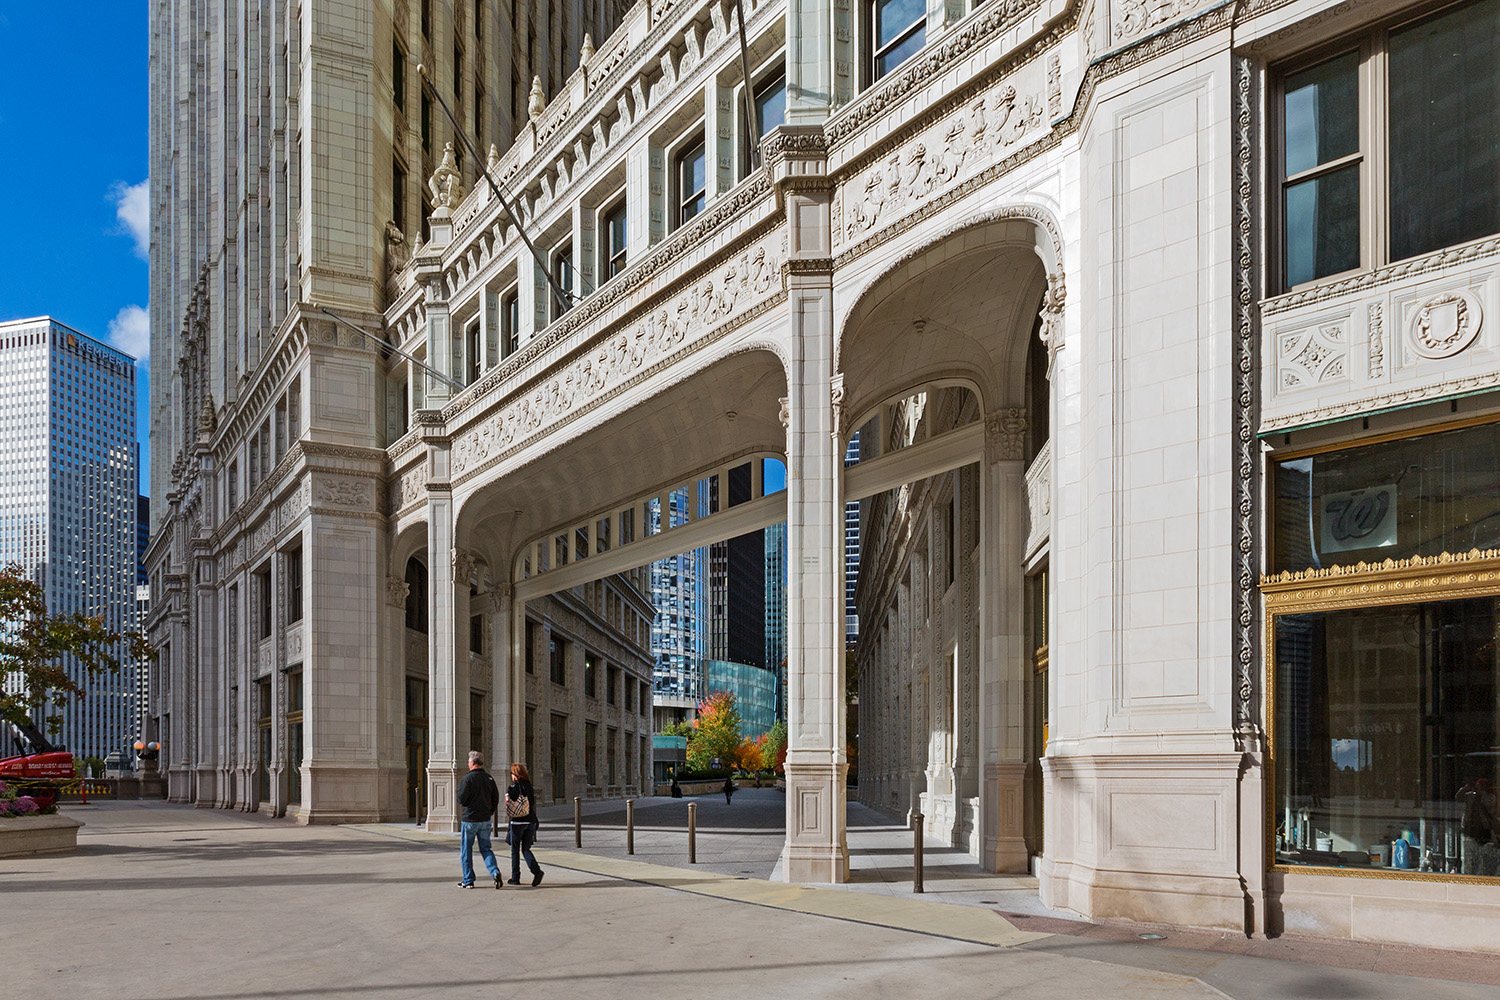 Wrigley Building / Chicago IL / For The New York Times